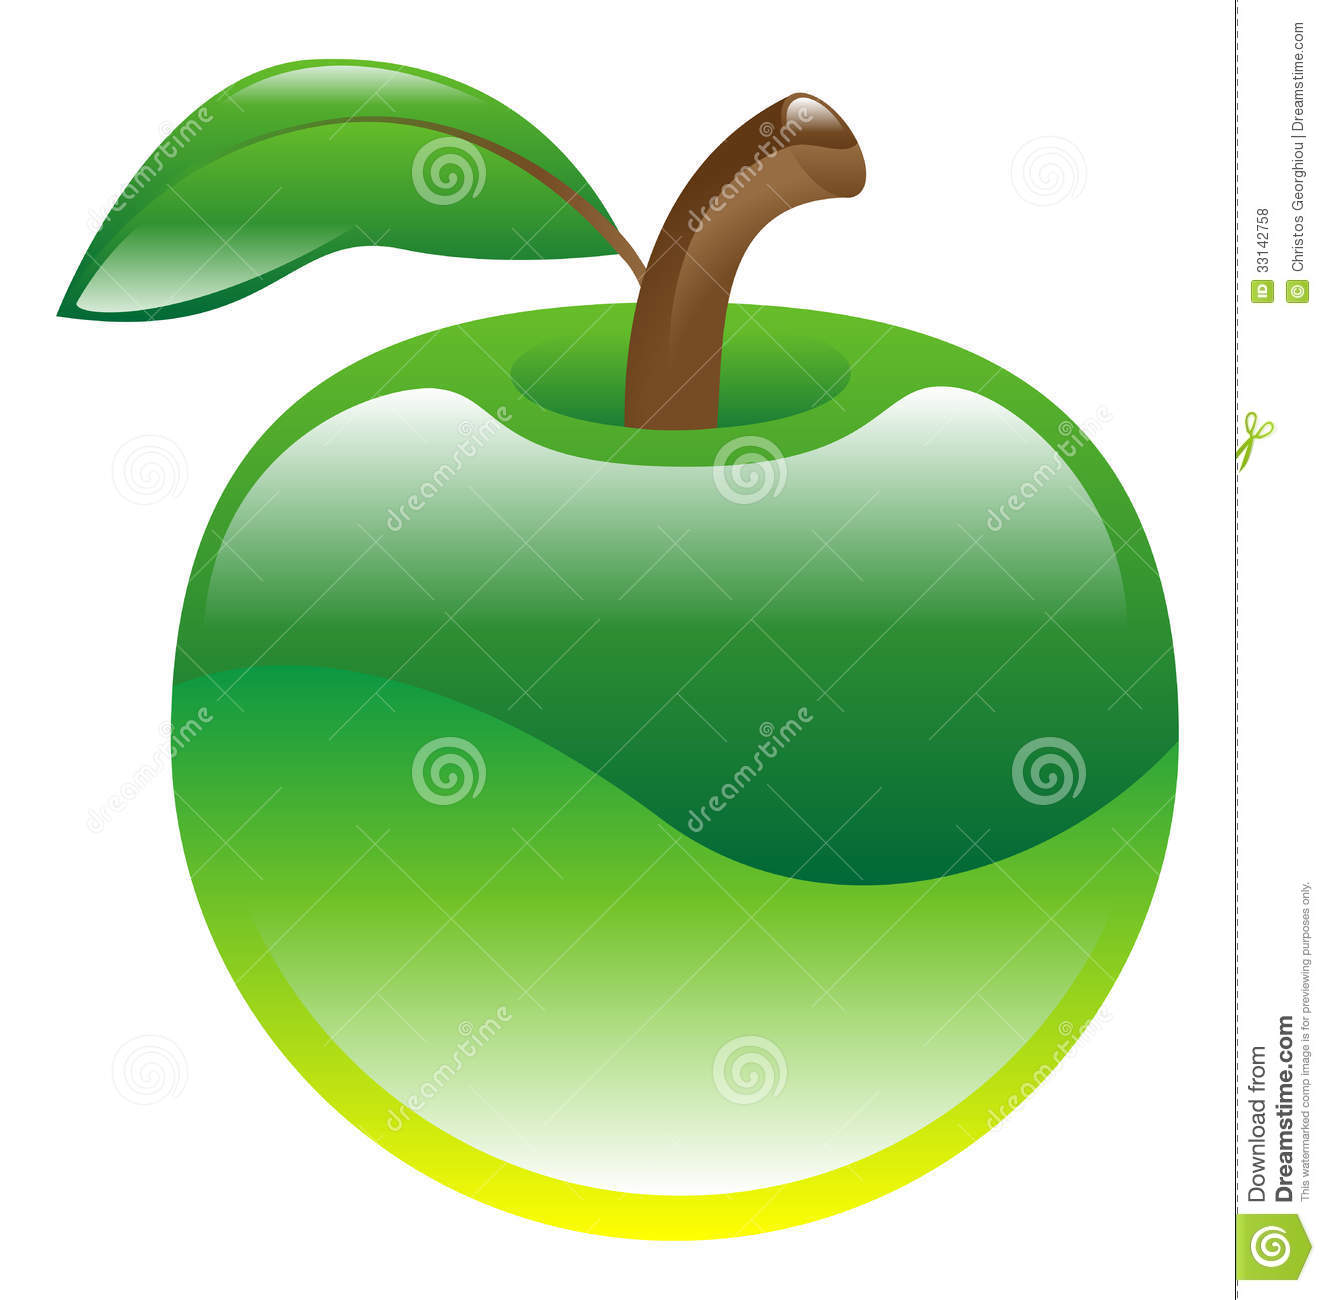 green%20apple%20clipart